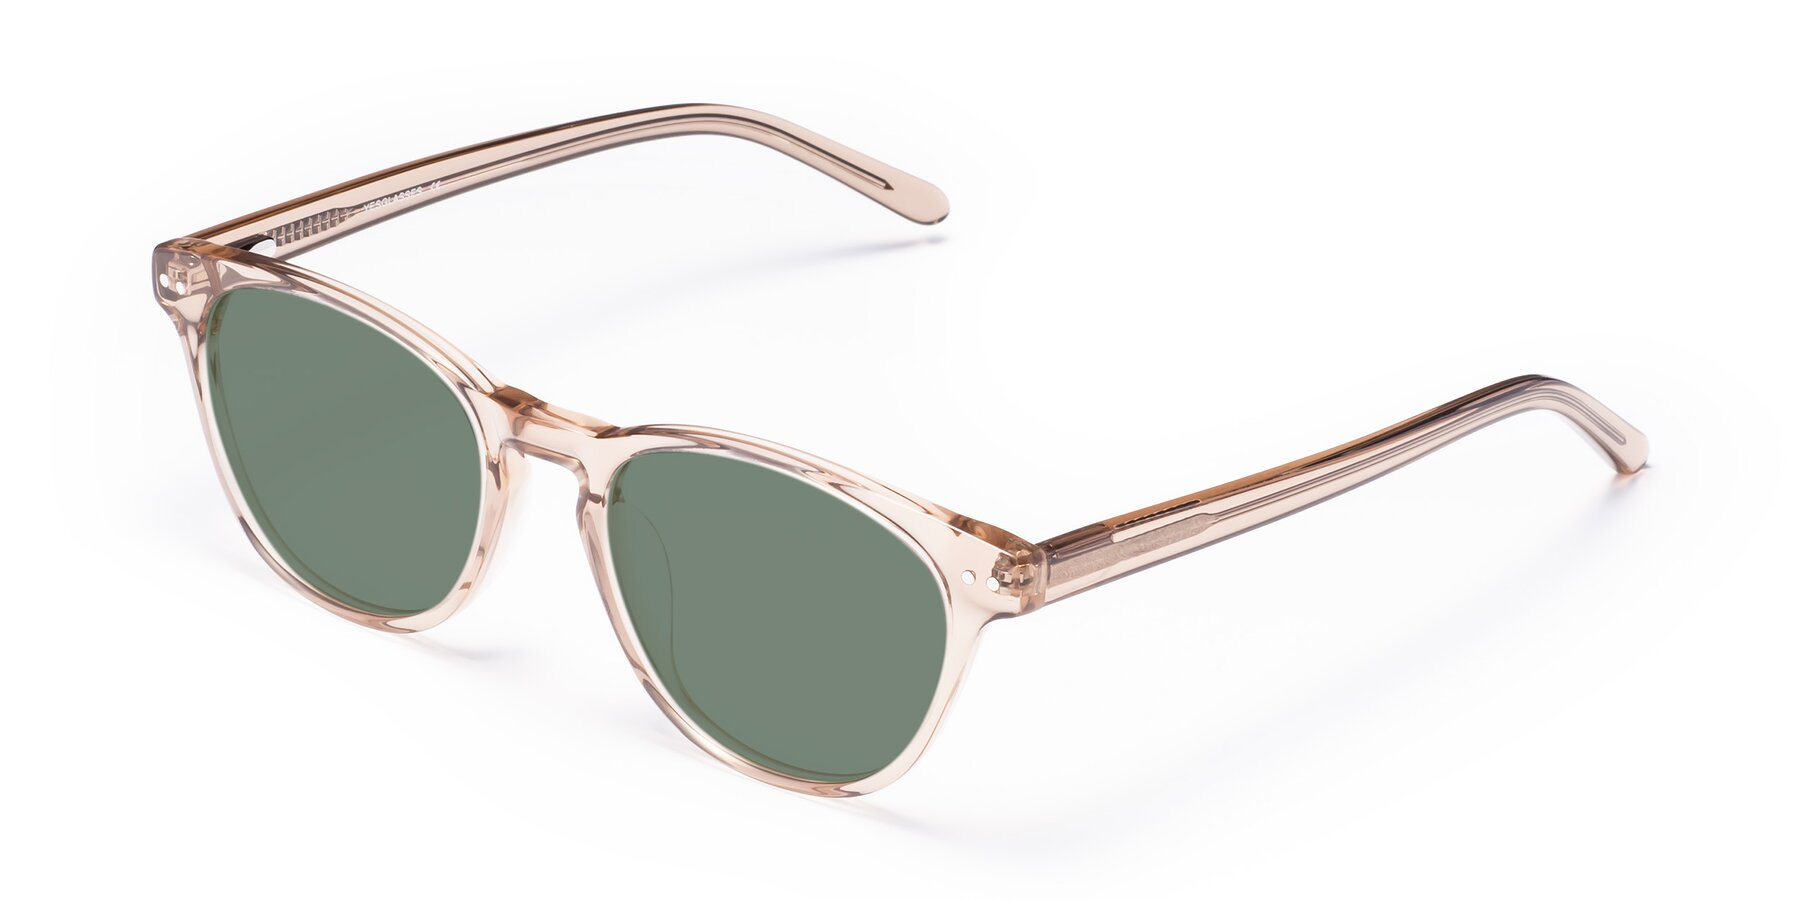 Angle of Blaze in light Brown with Medium Green Tinted Lenses